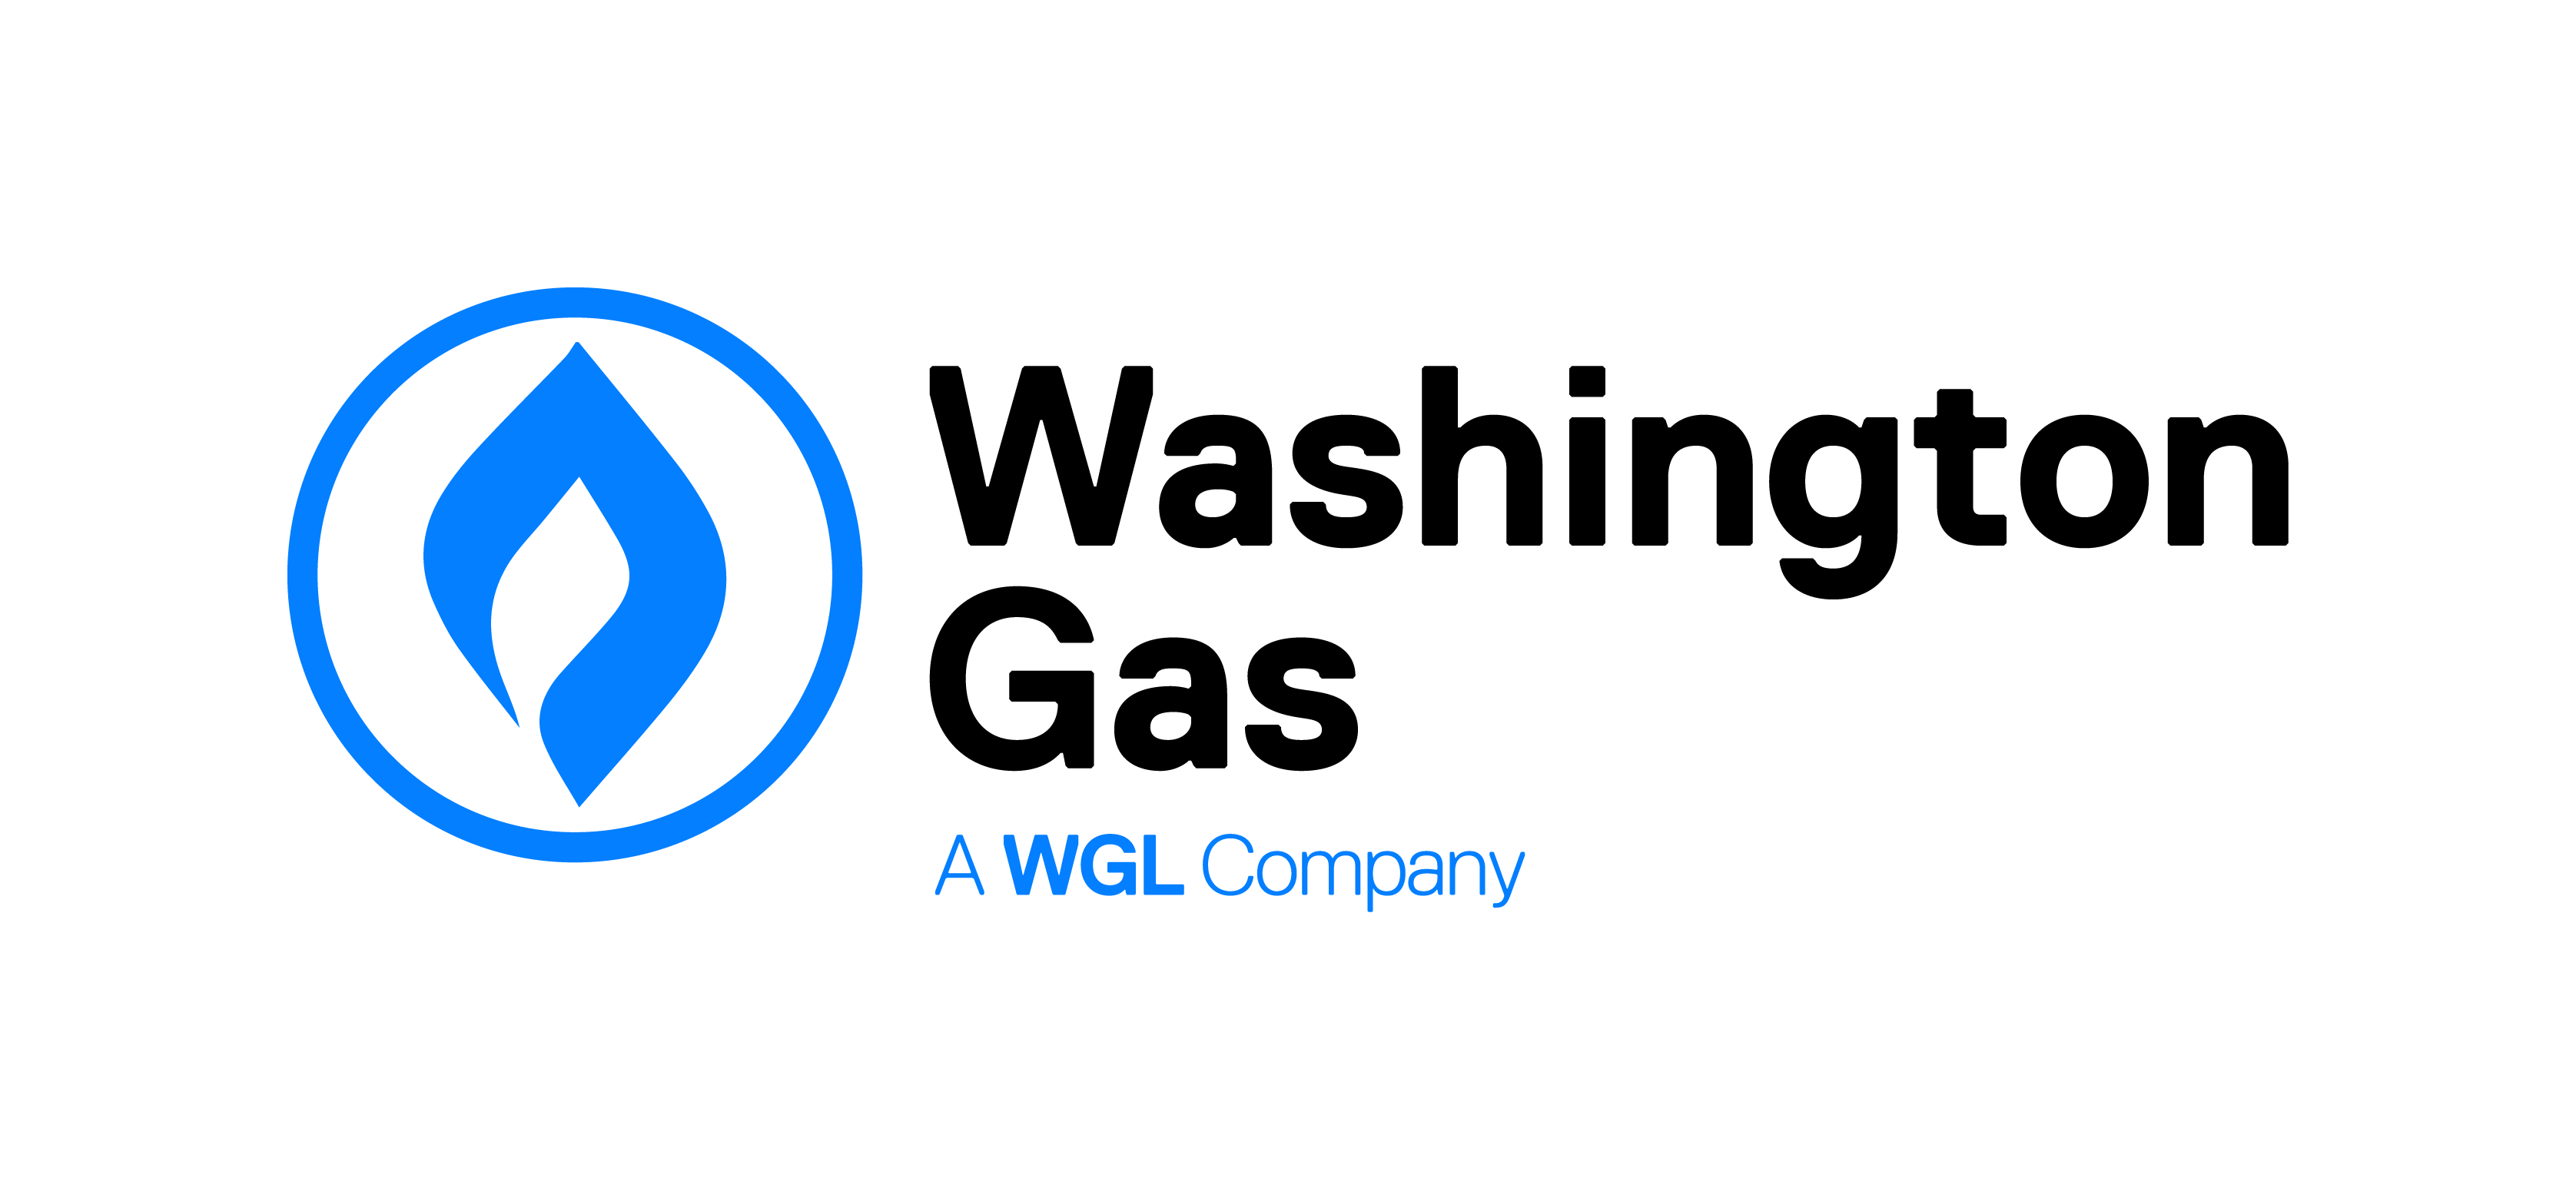 WashingtonGas.logo.horiz_CMYK.jpg